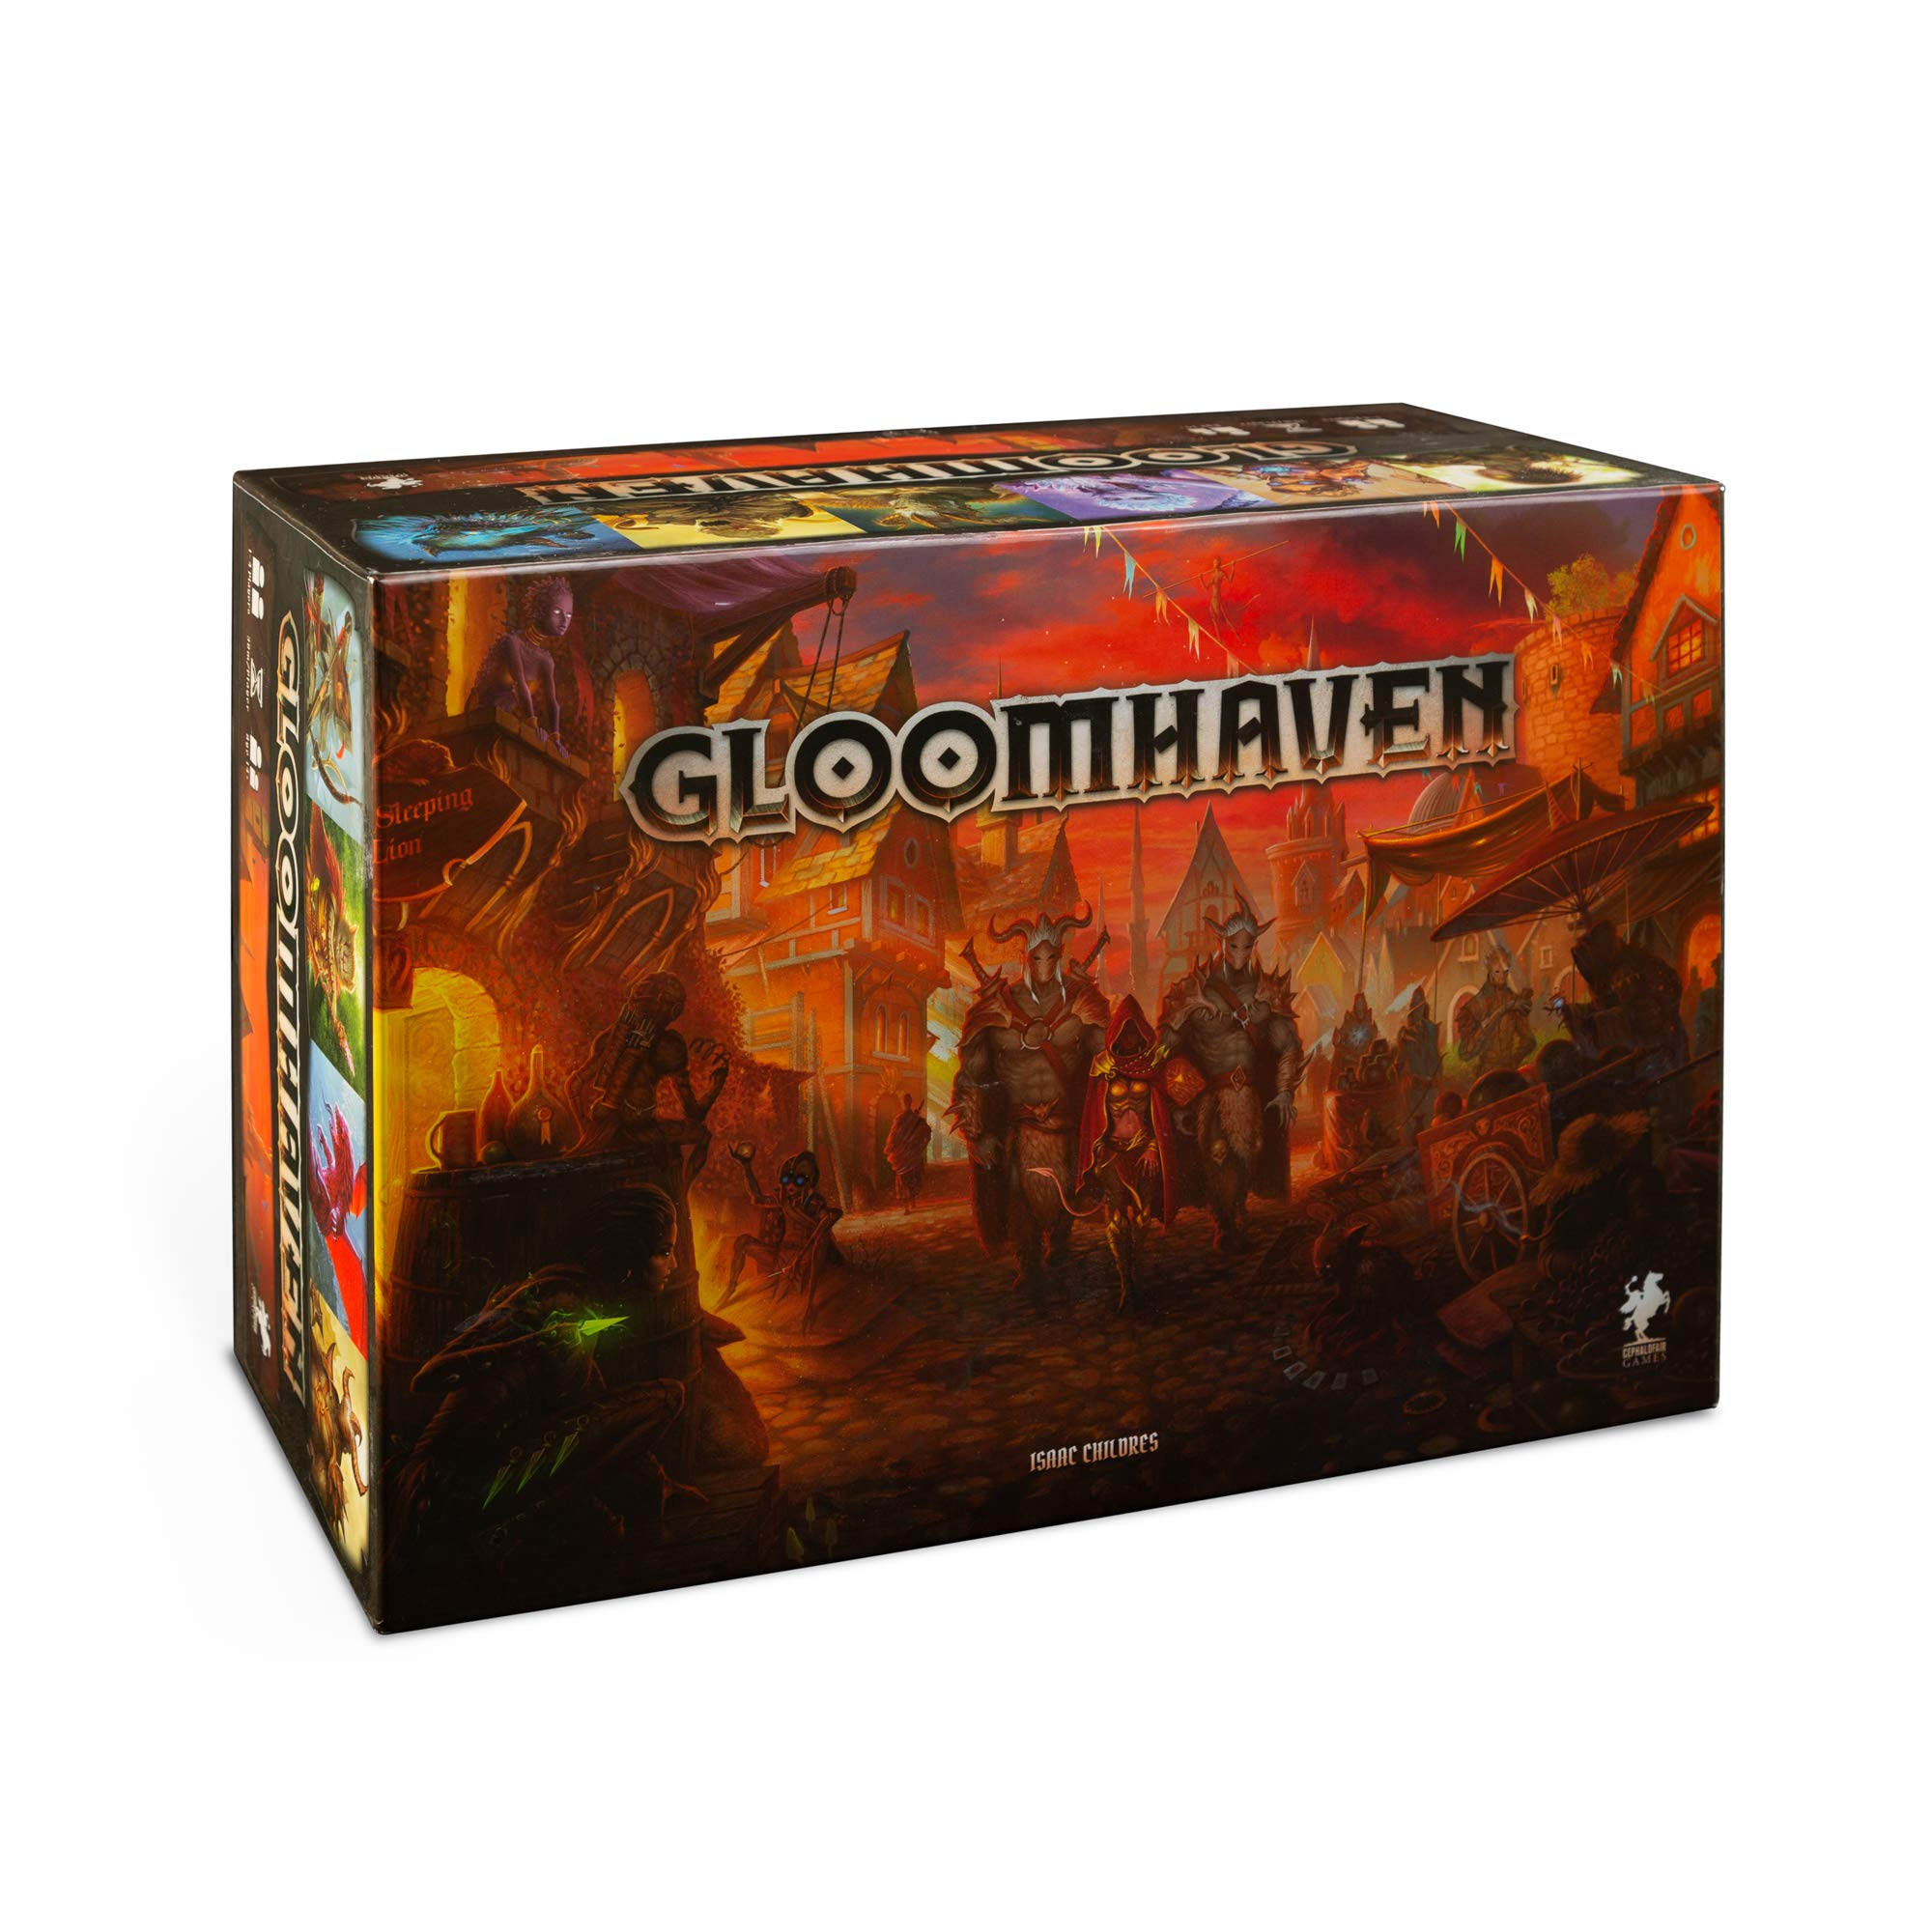 Gloomhaven by Cephalofair Games